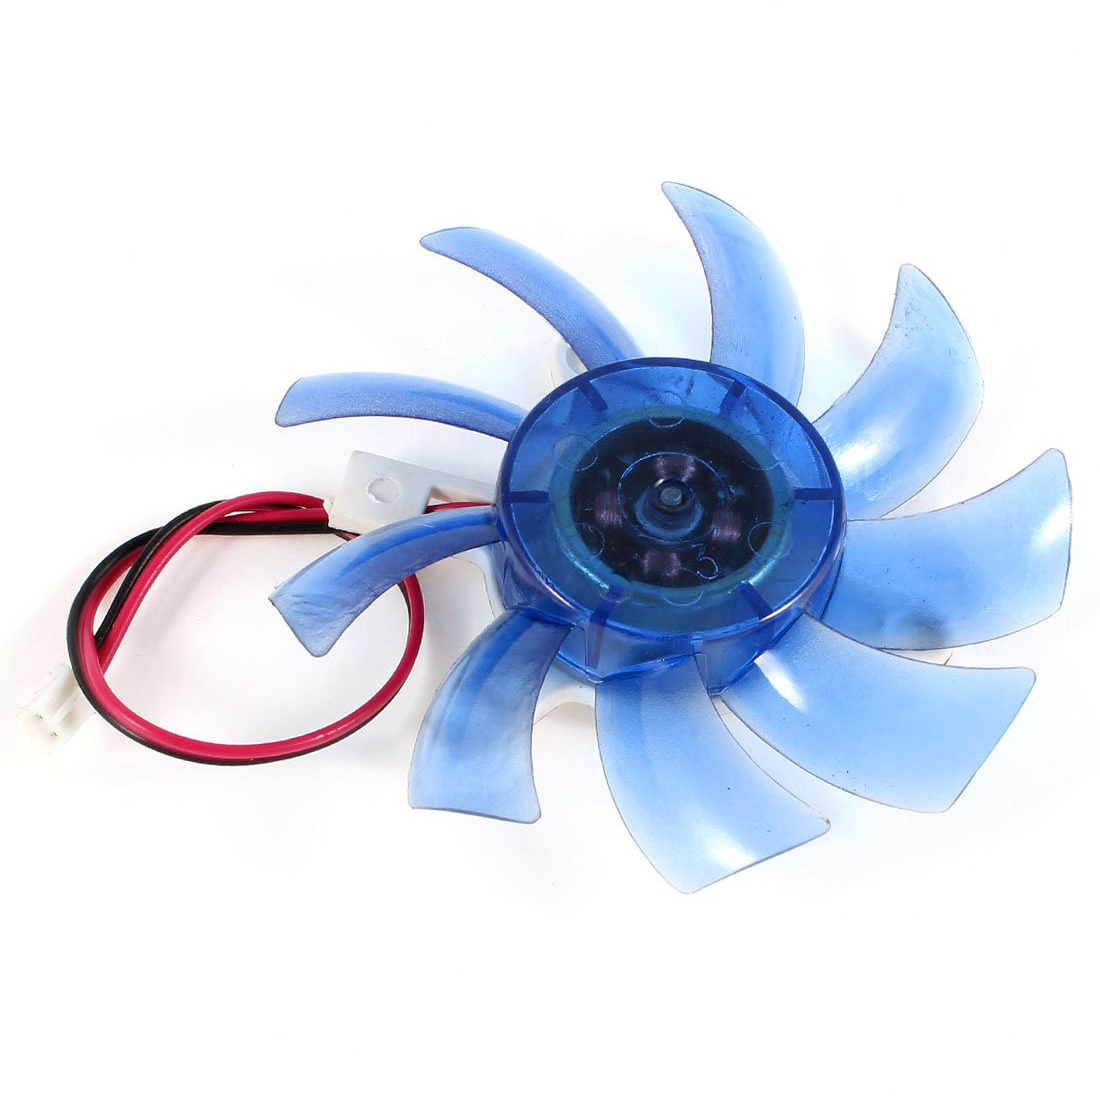 75mm 12VDC Blue Plastic VGA Video Card Cooling Fan Cooler for Computer personal computer graphics cards fan cooler replacements fit for pc graphics cards cooling fan 12v 0 1a graphic fan